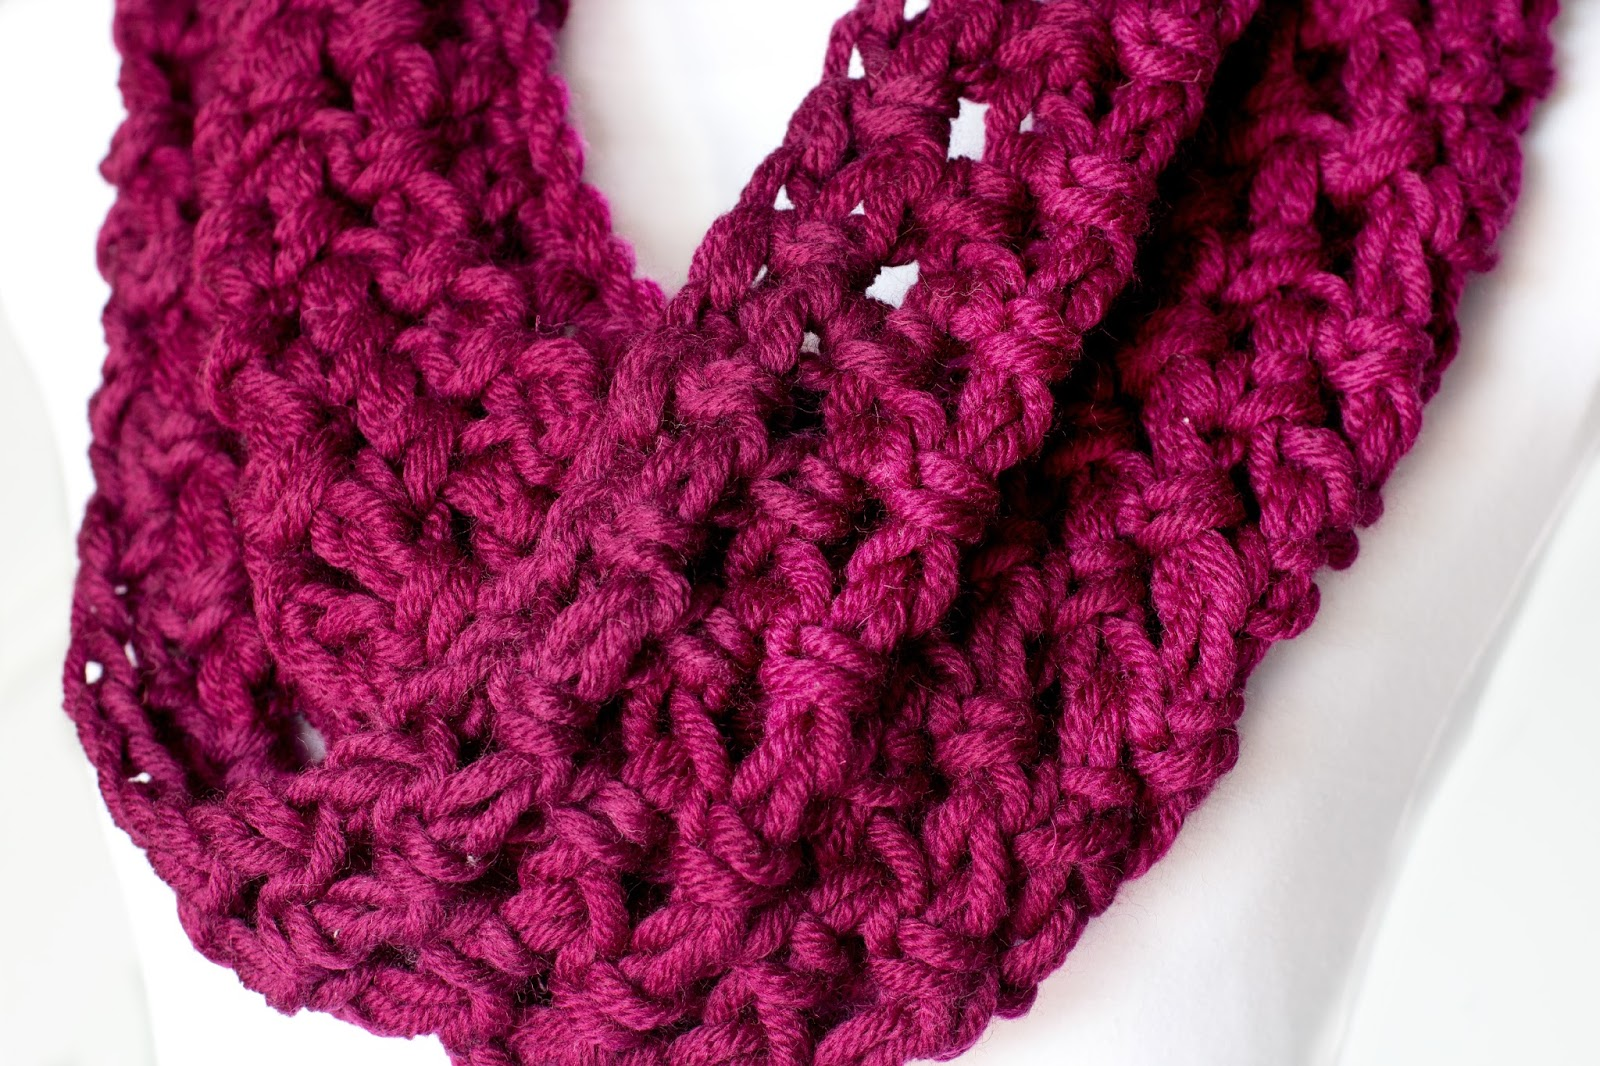 Crochet Patterns Super Bulky Yarn : ... Honey Craft, Crochet, Create: Basic Chunky Cowl Crochet Pattern